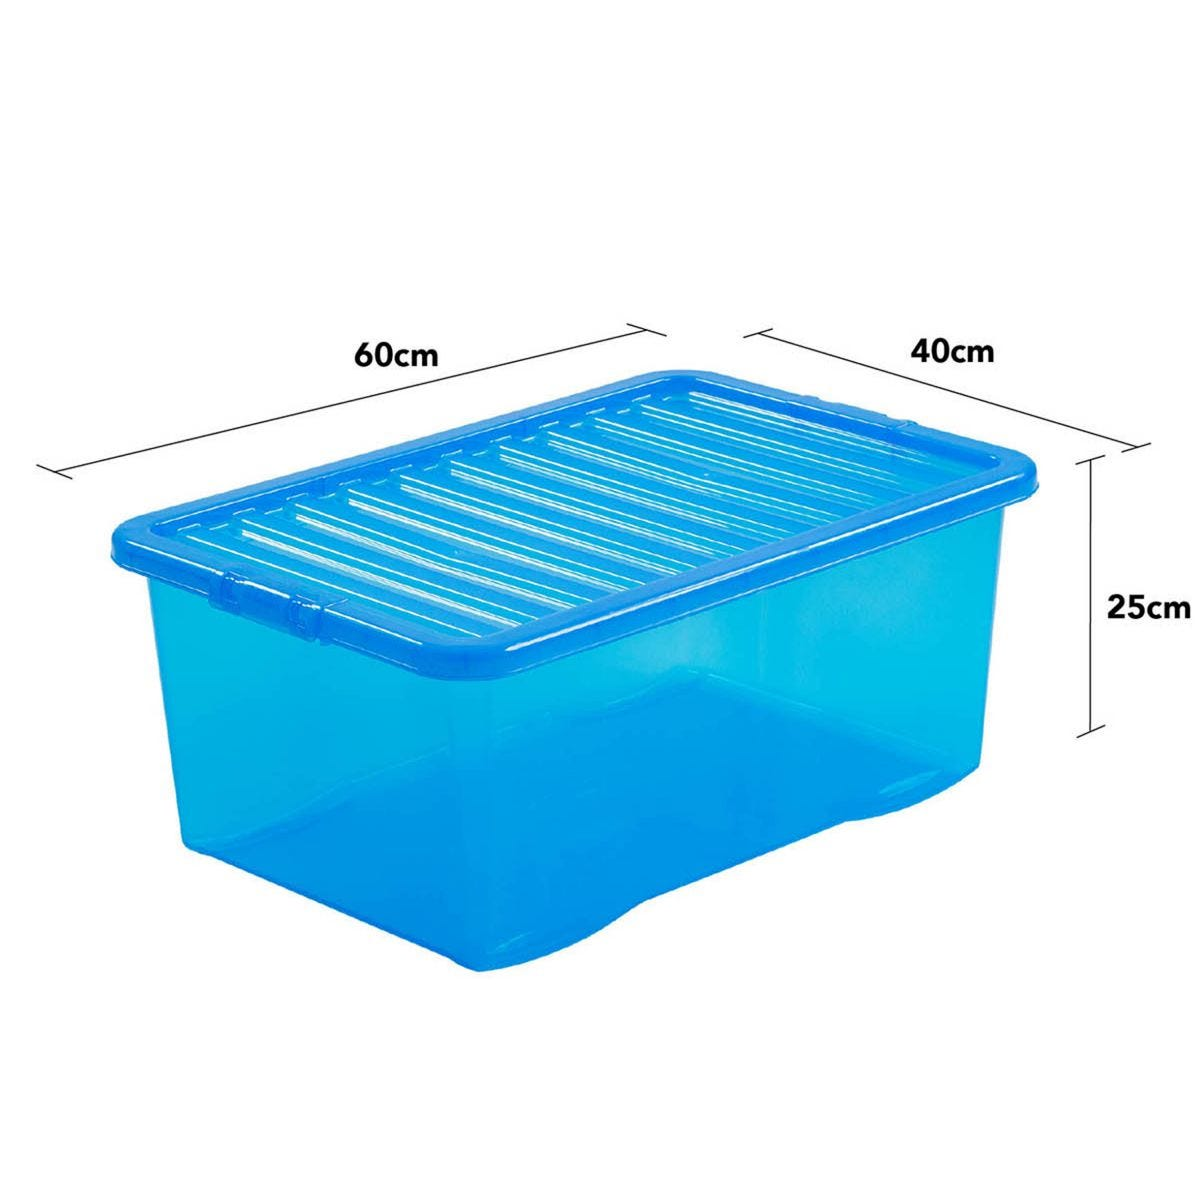 Wham Crystal Blue Storage Box with Lid 45L - Set of 3